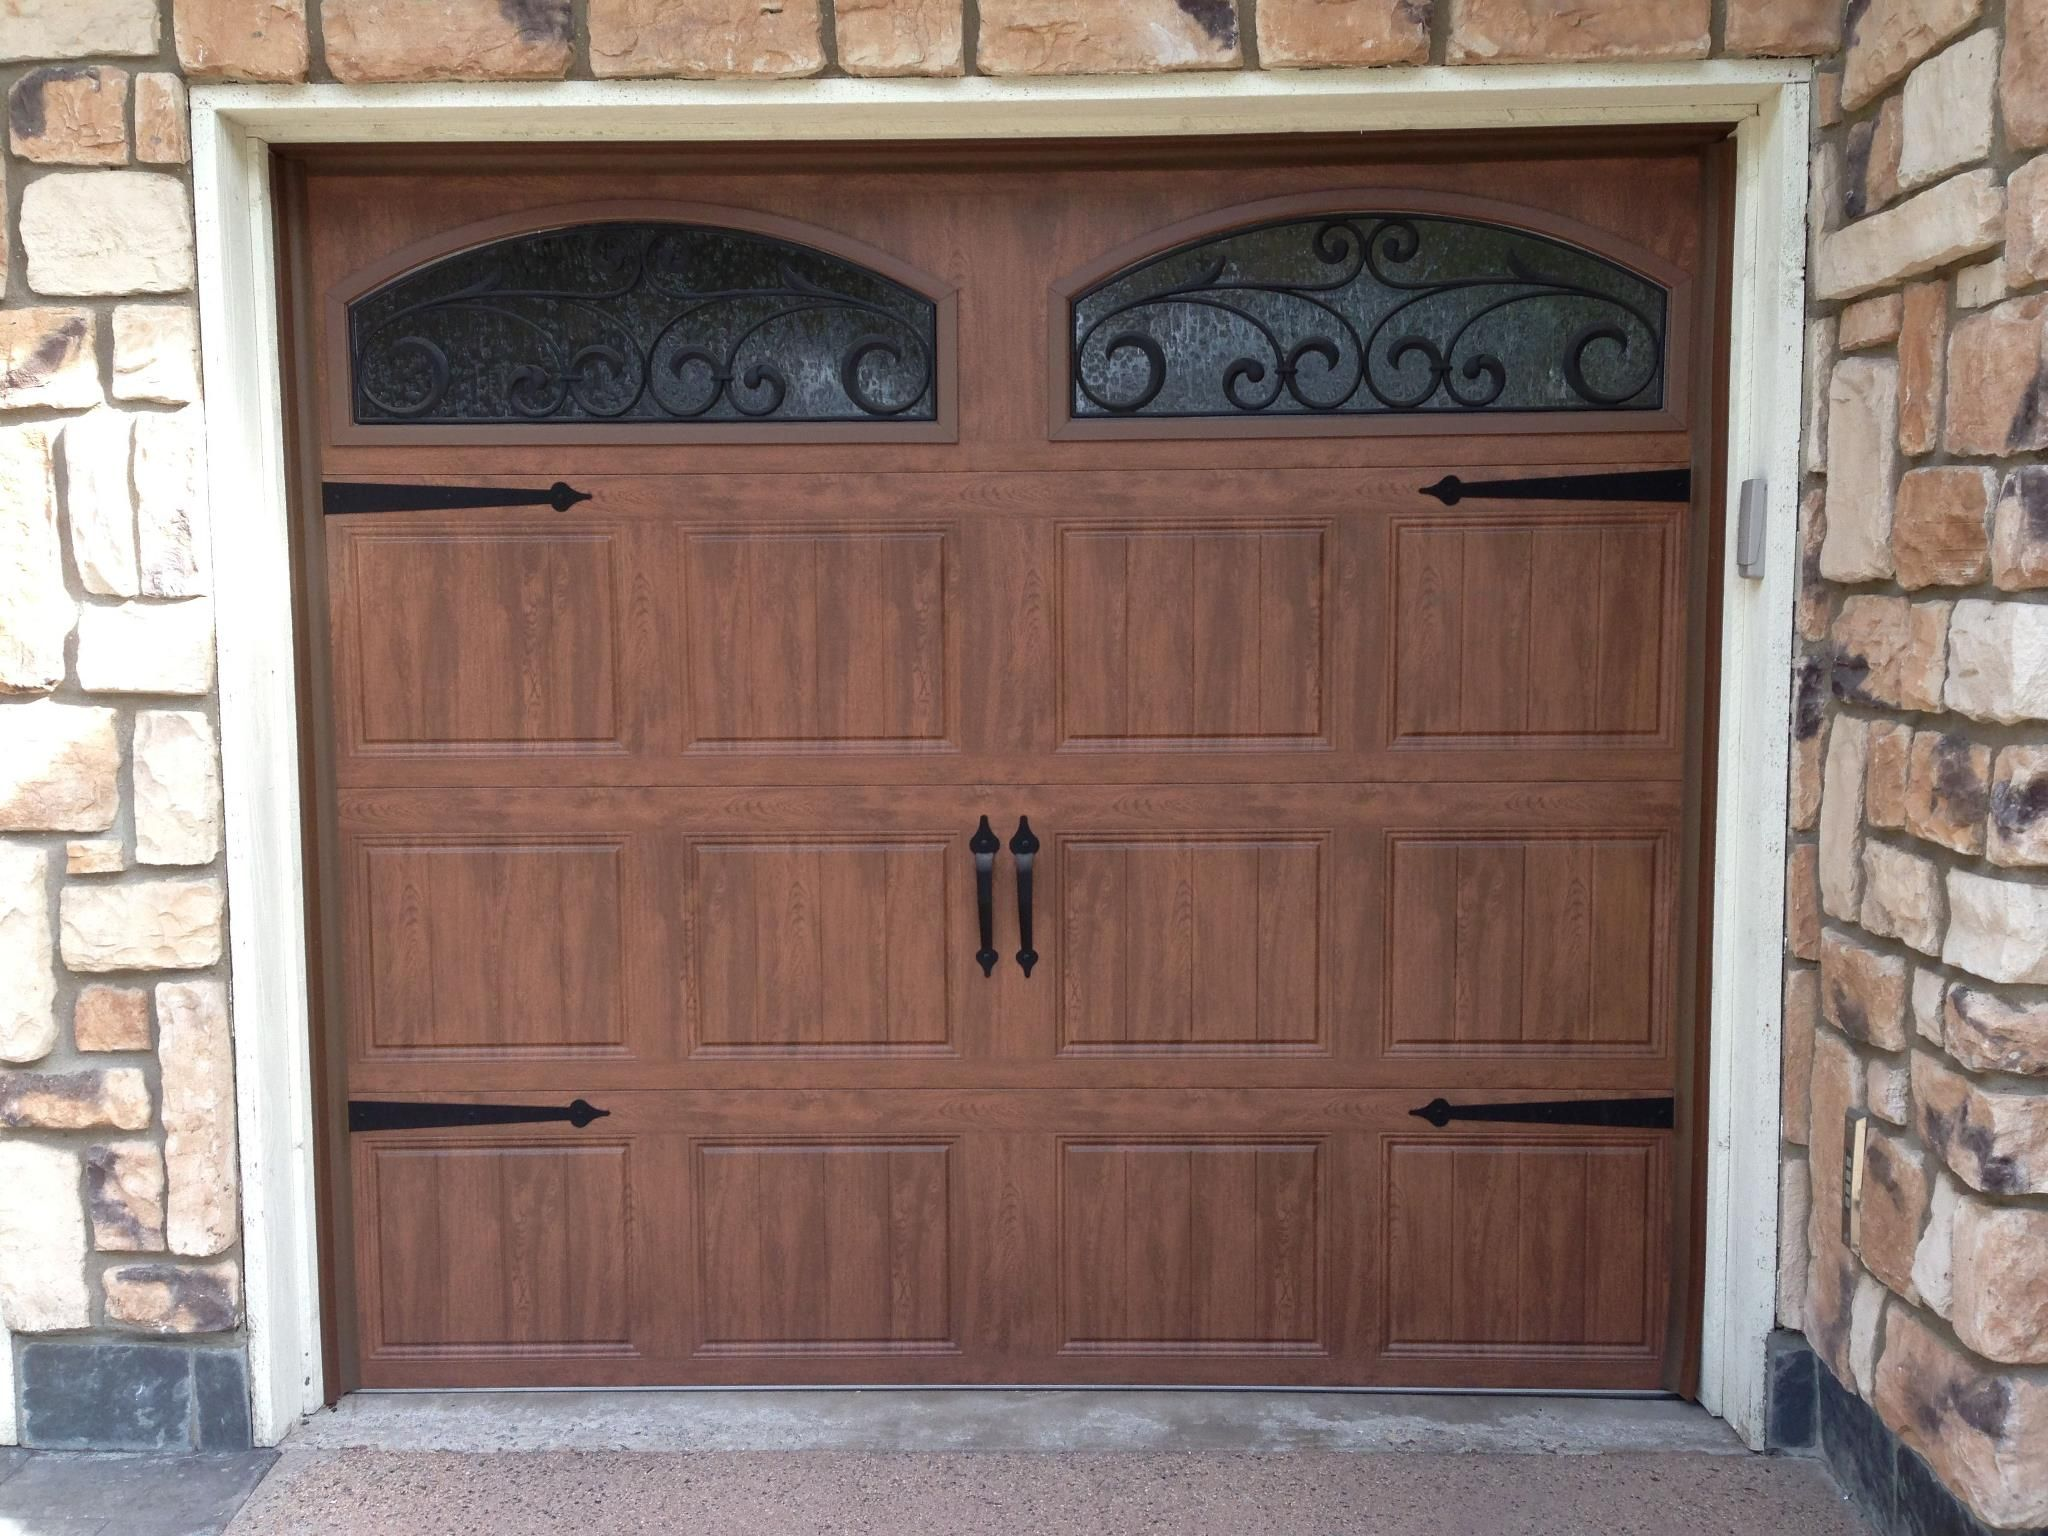 Clopay gallery collection steel garage door with ultra for Buy clopay garage doors online